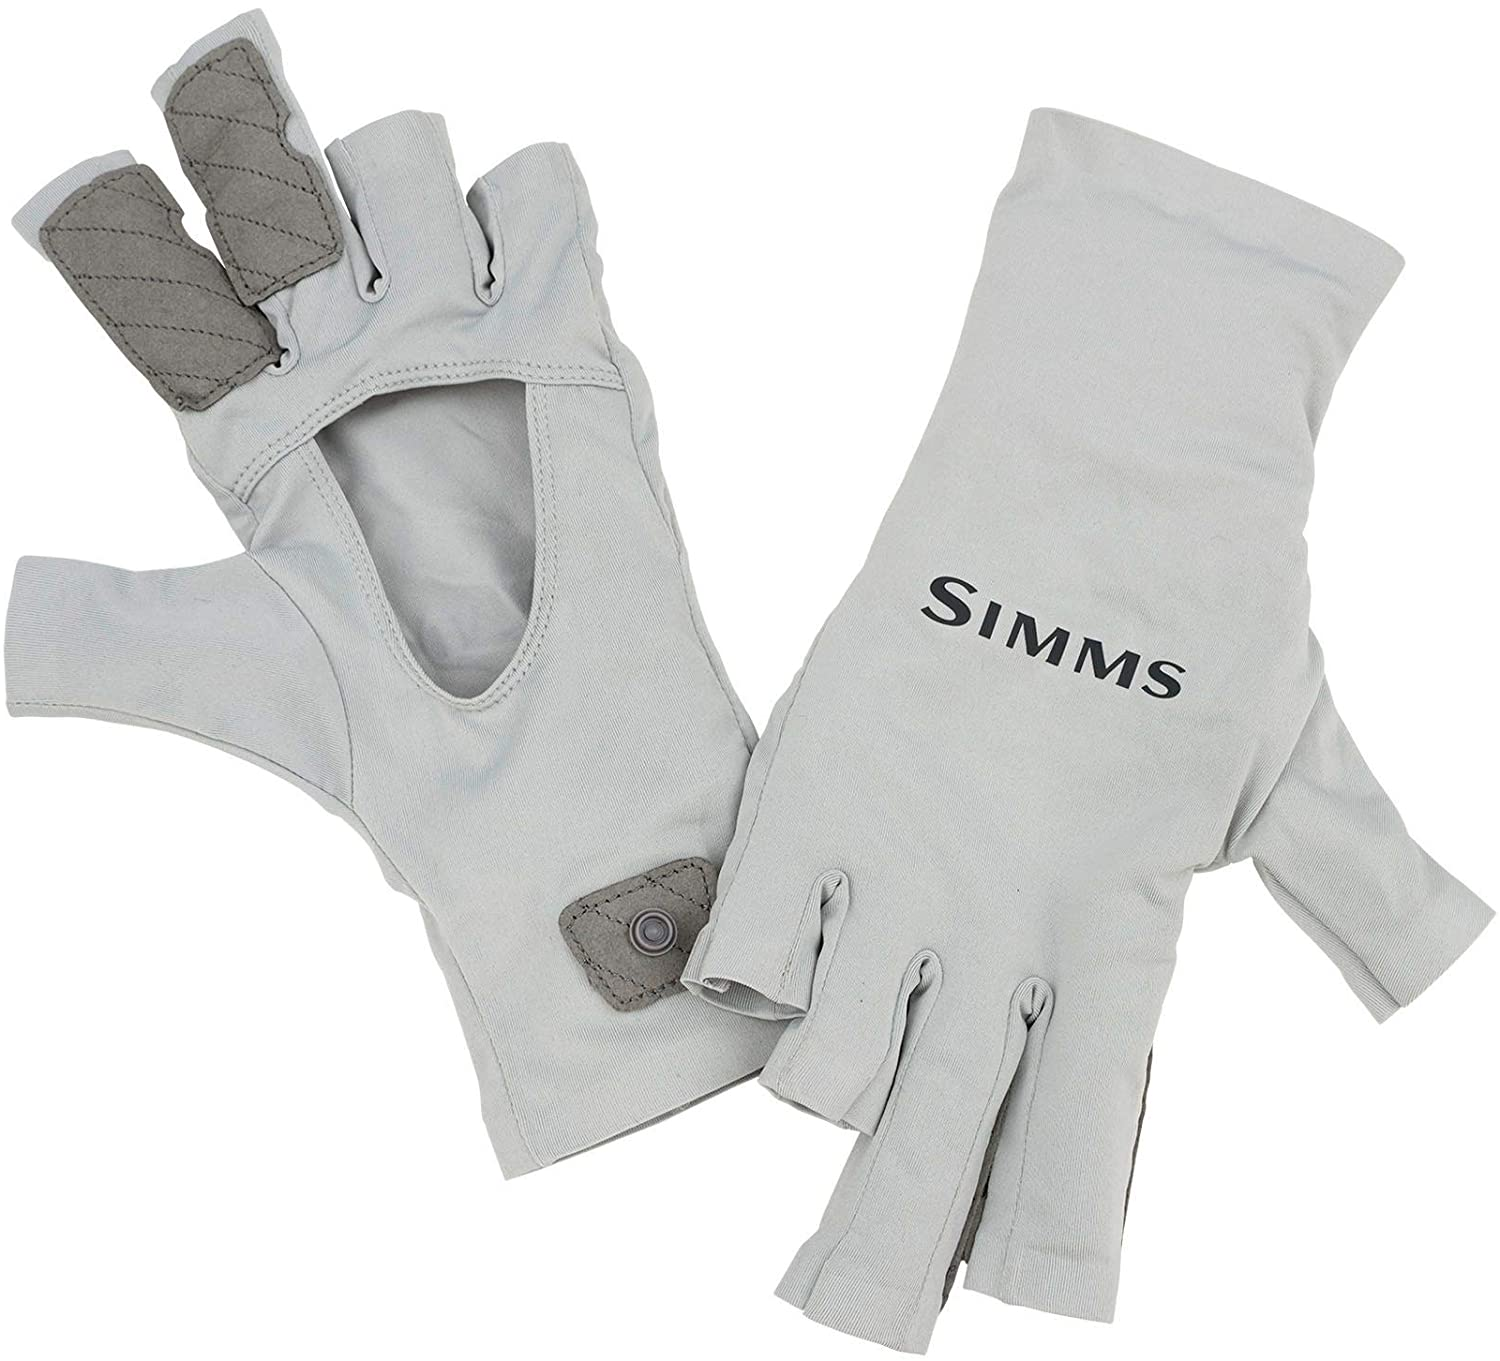 Simms Fishing Gloves What to Wear Fishing